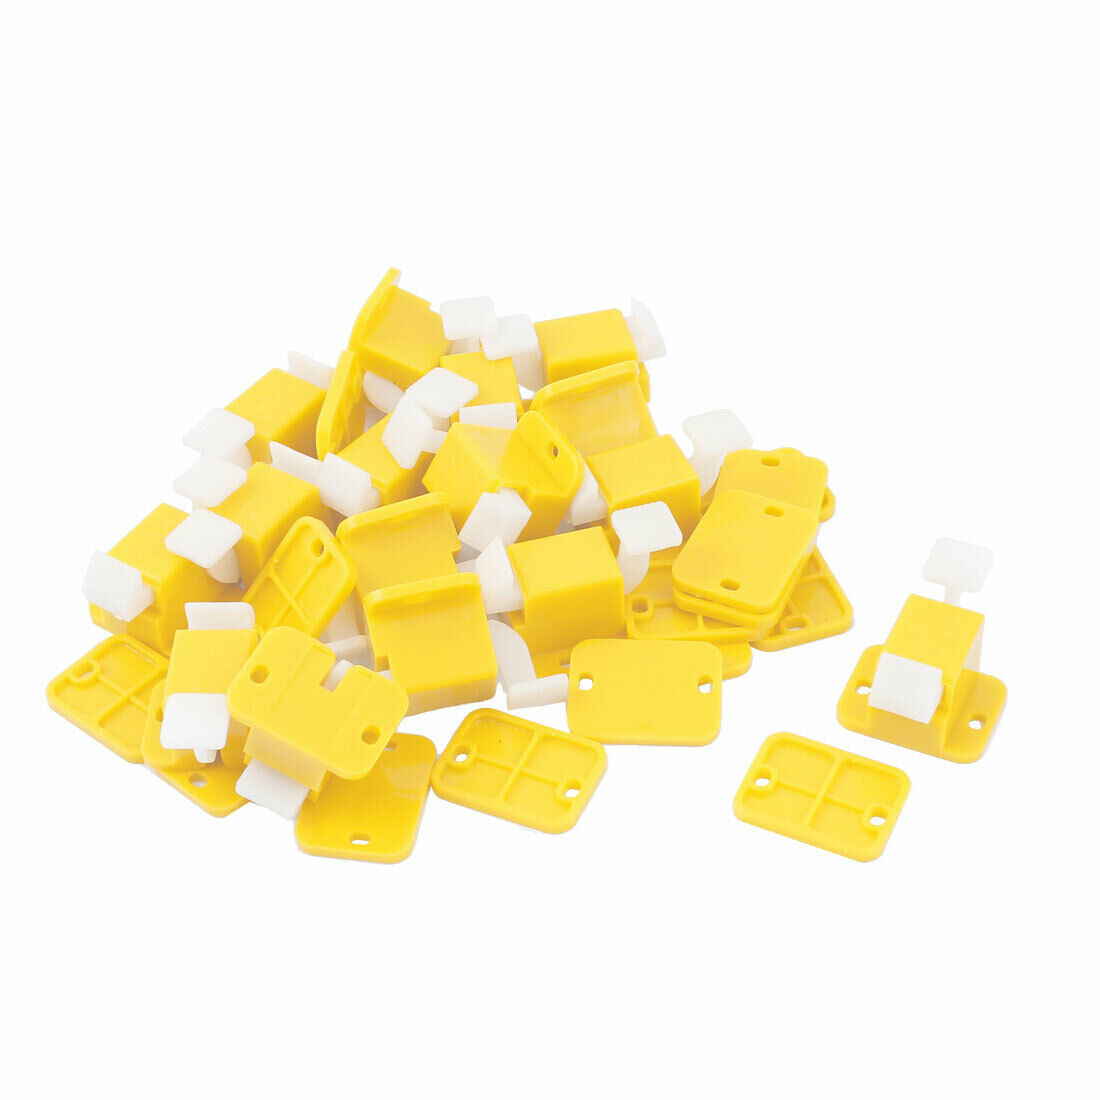 Pcb Ict Prototype Test Fixture Jig Edge Latches Yellow White 16pcs Spacer Circuit Board Support Buy Push Spacerpcb Driver 1 Of 2only 5 Available